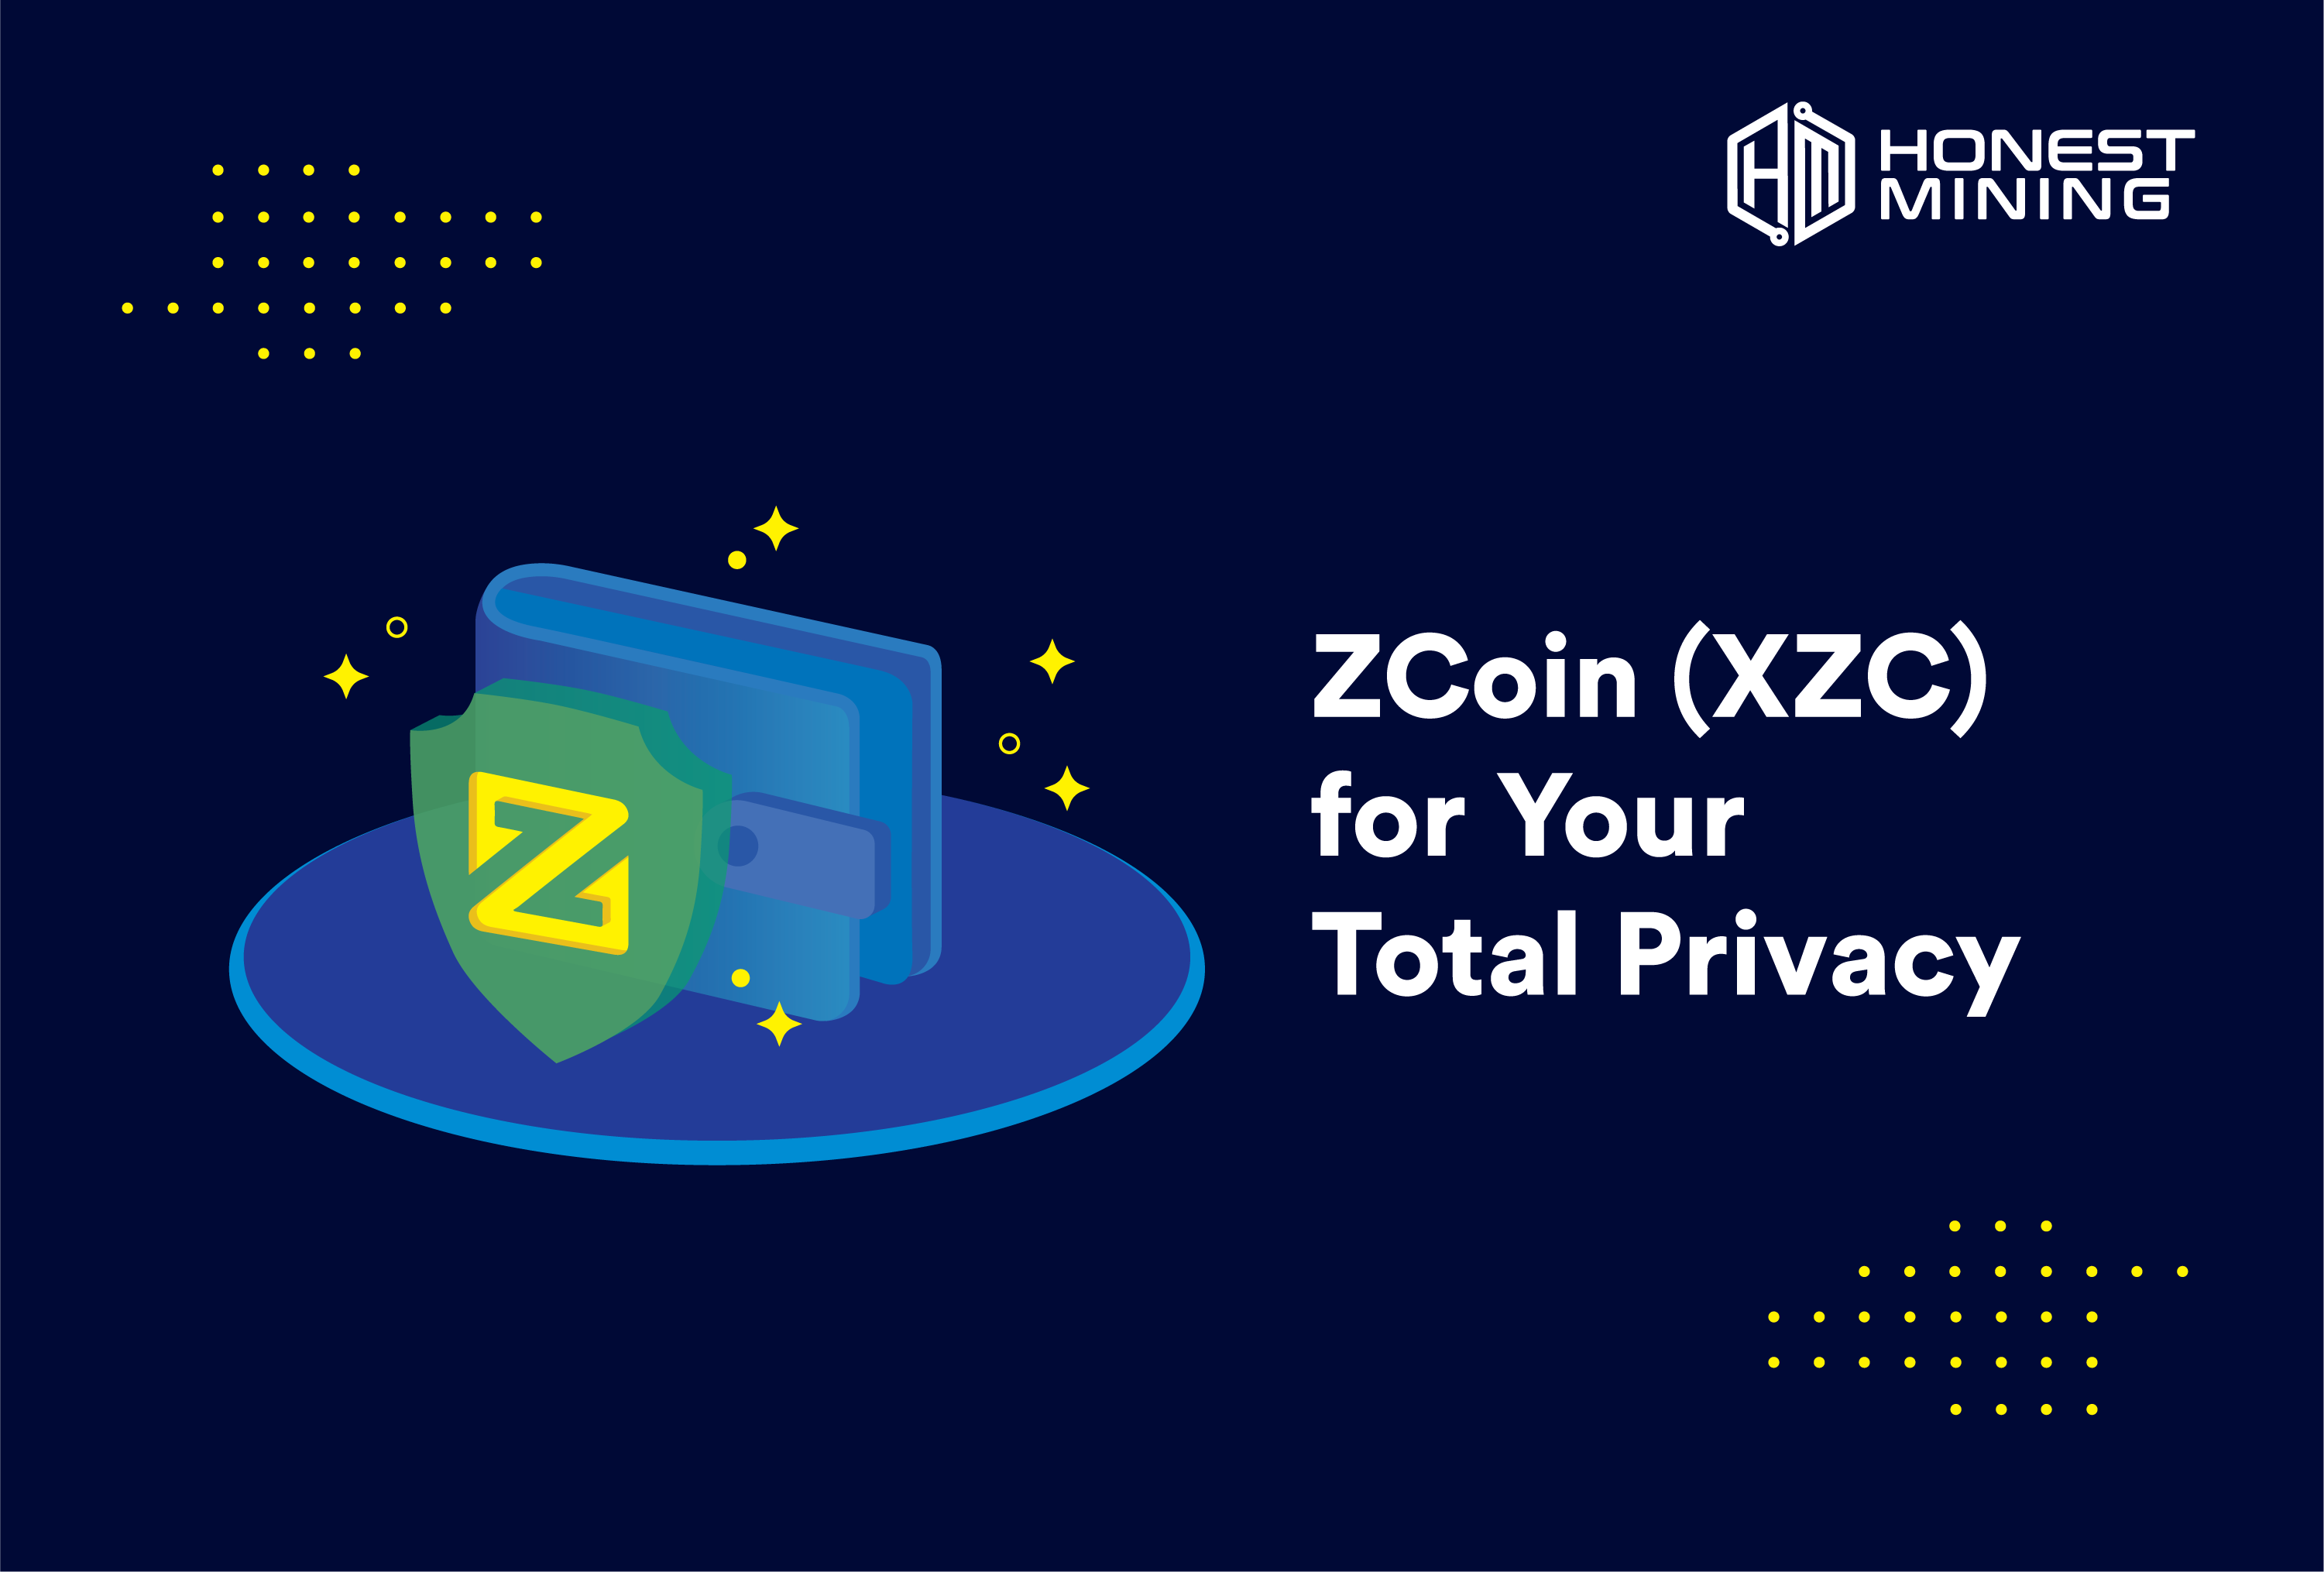 ZCoin (XZC) for Your Total Privacy